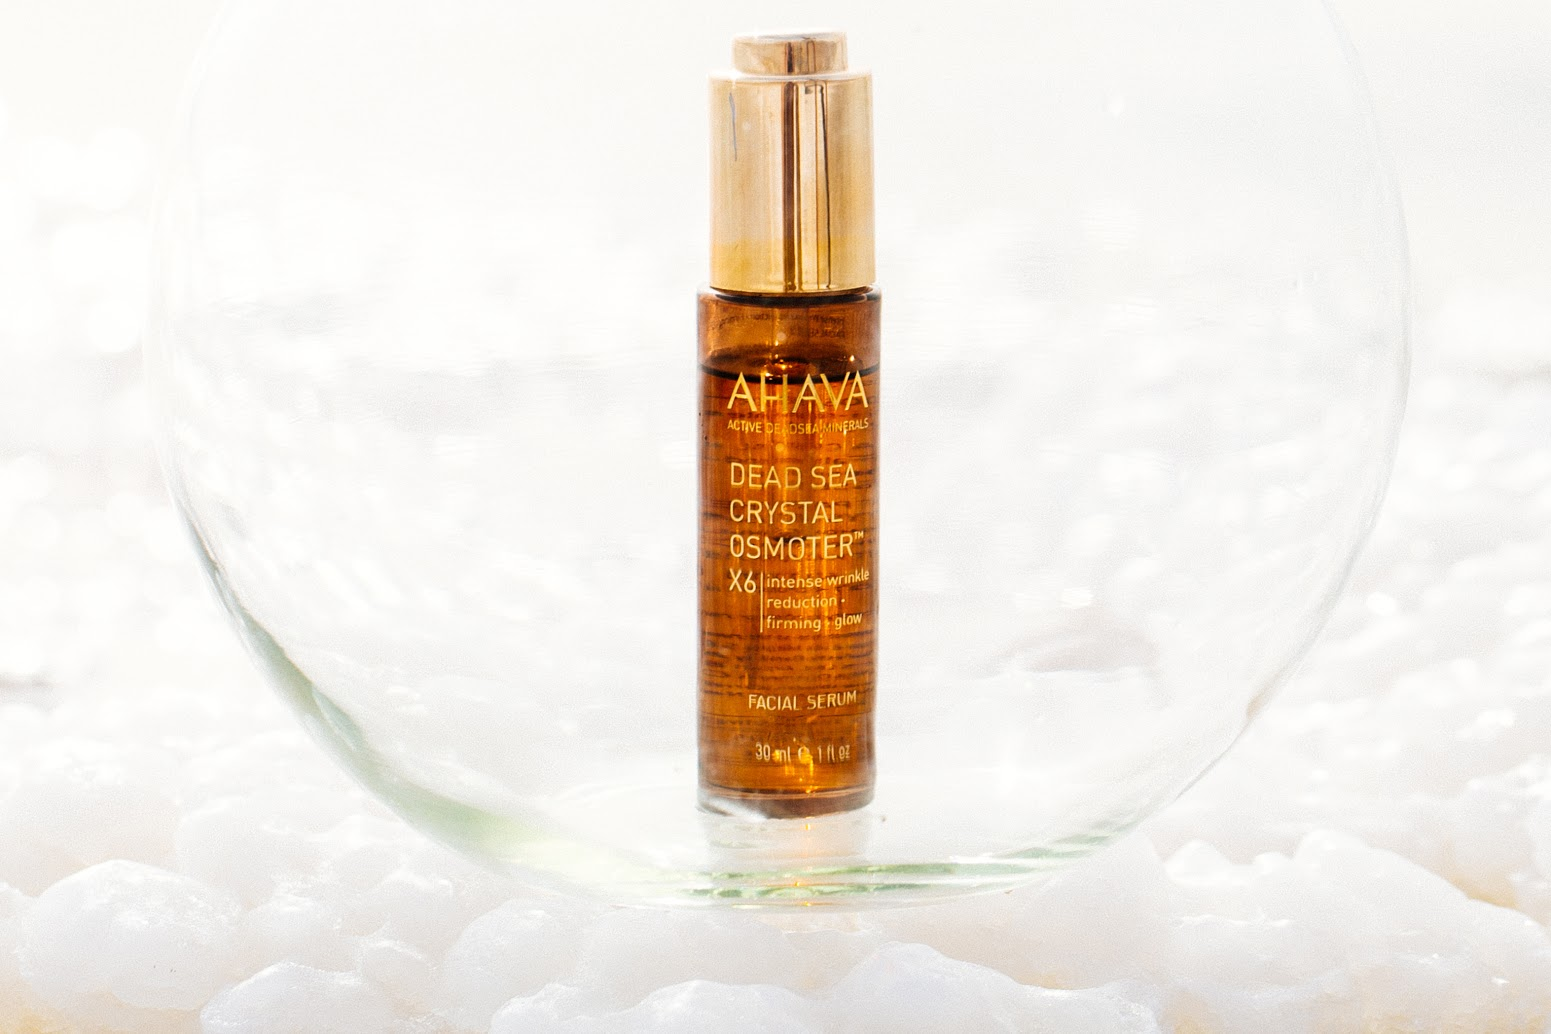 crystal osmoter ahava face serum